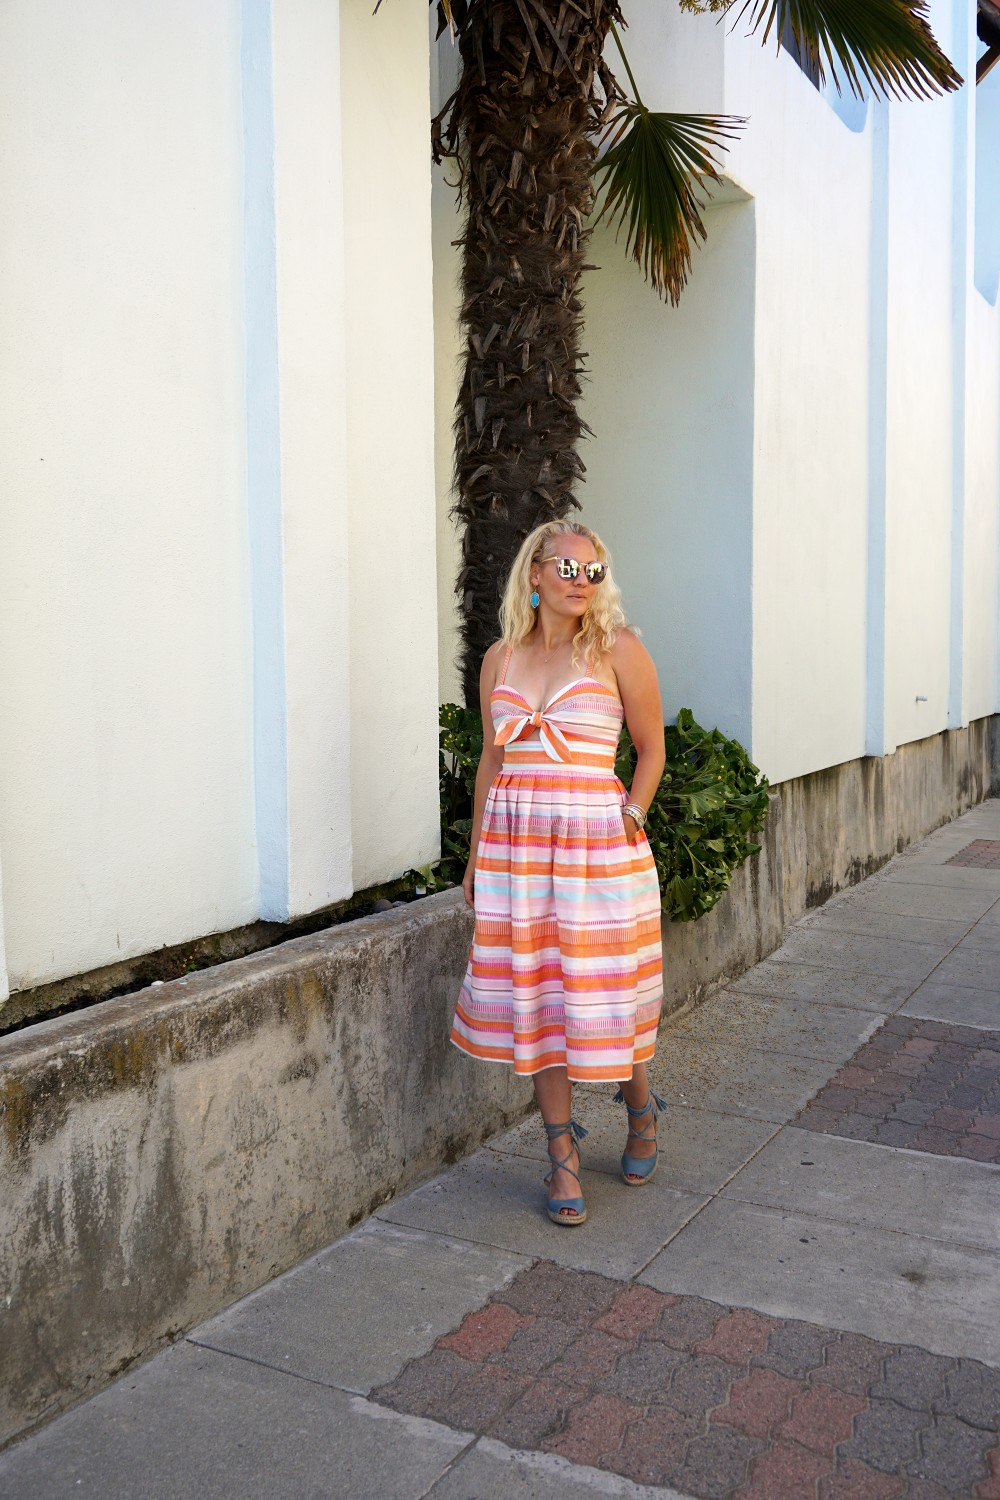 Spring Stripe Dress-Stripes and Cut Outs-Outfit Inspiration-Bay Area Blogger-Summer Dress-Sunday Best Outfit Inspiration-Have Need Want 11